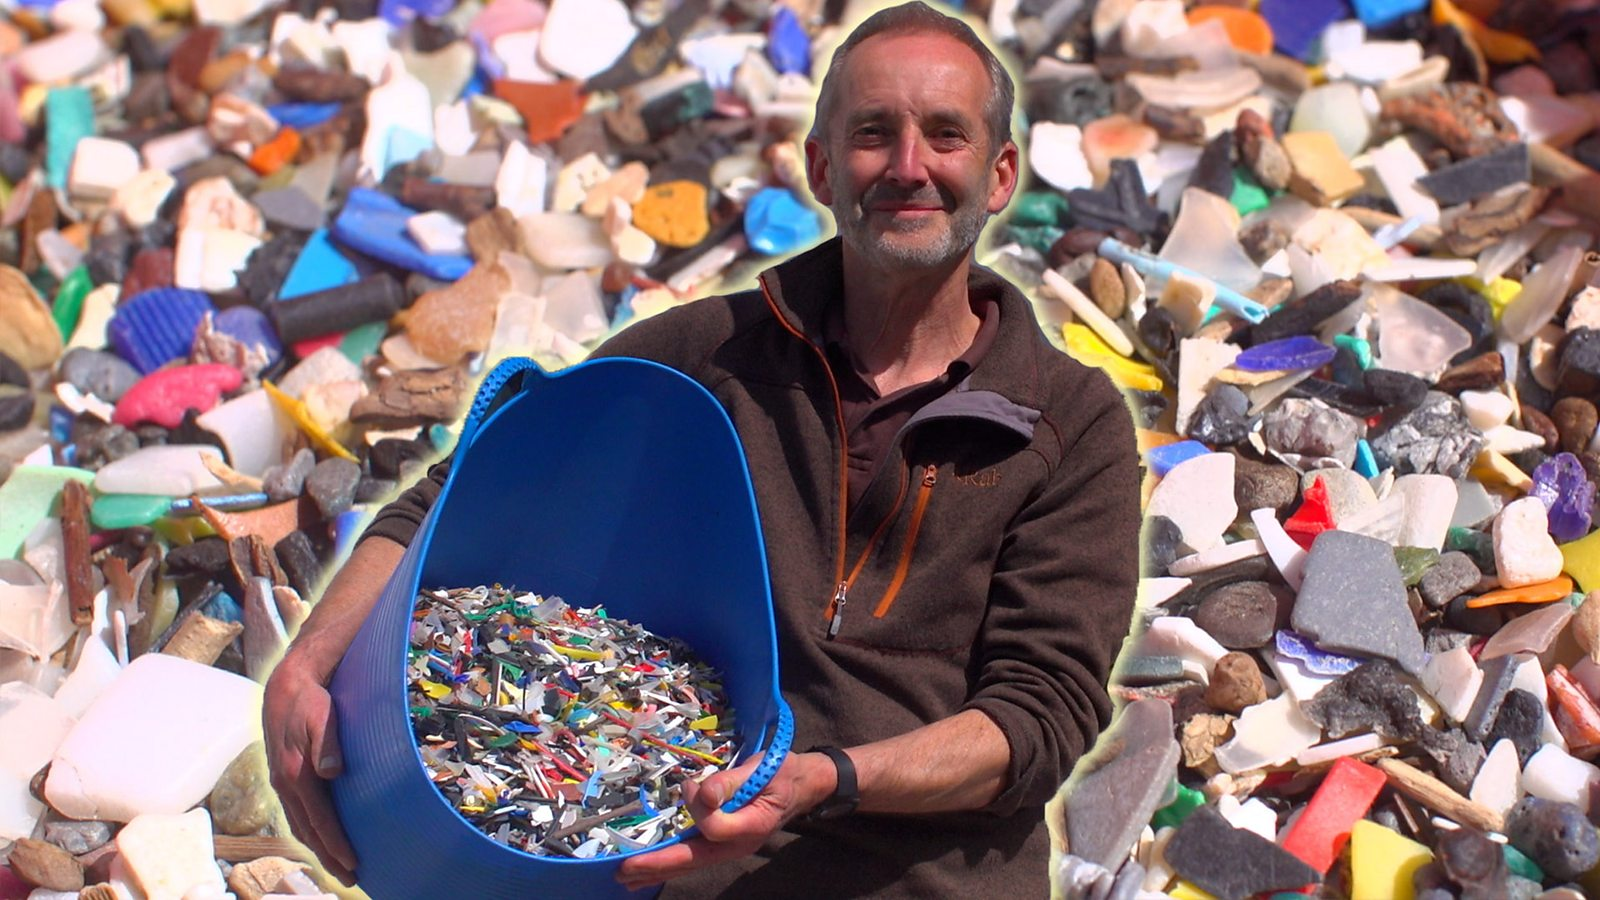 'I found 300 Lego flippers on the beach'